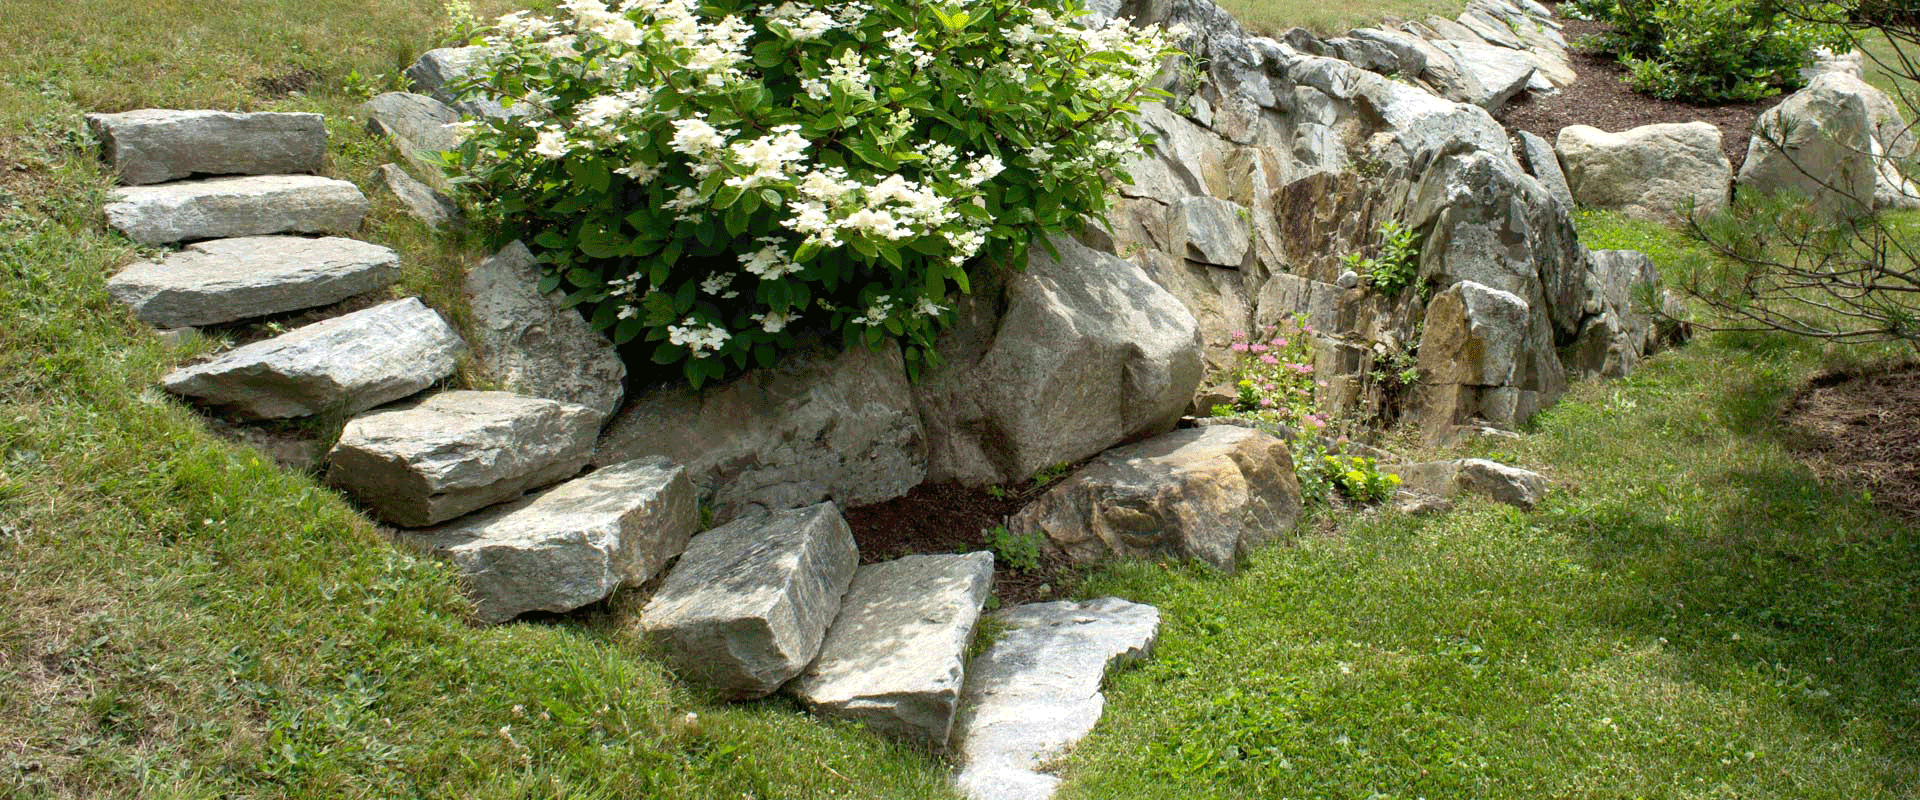 Stonework and pathways southern Maine